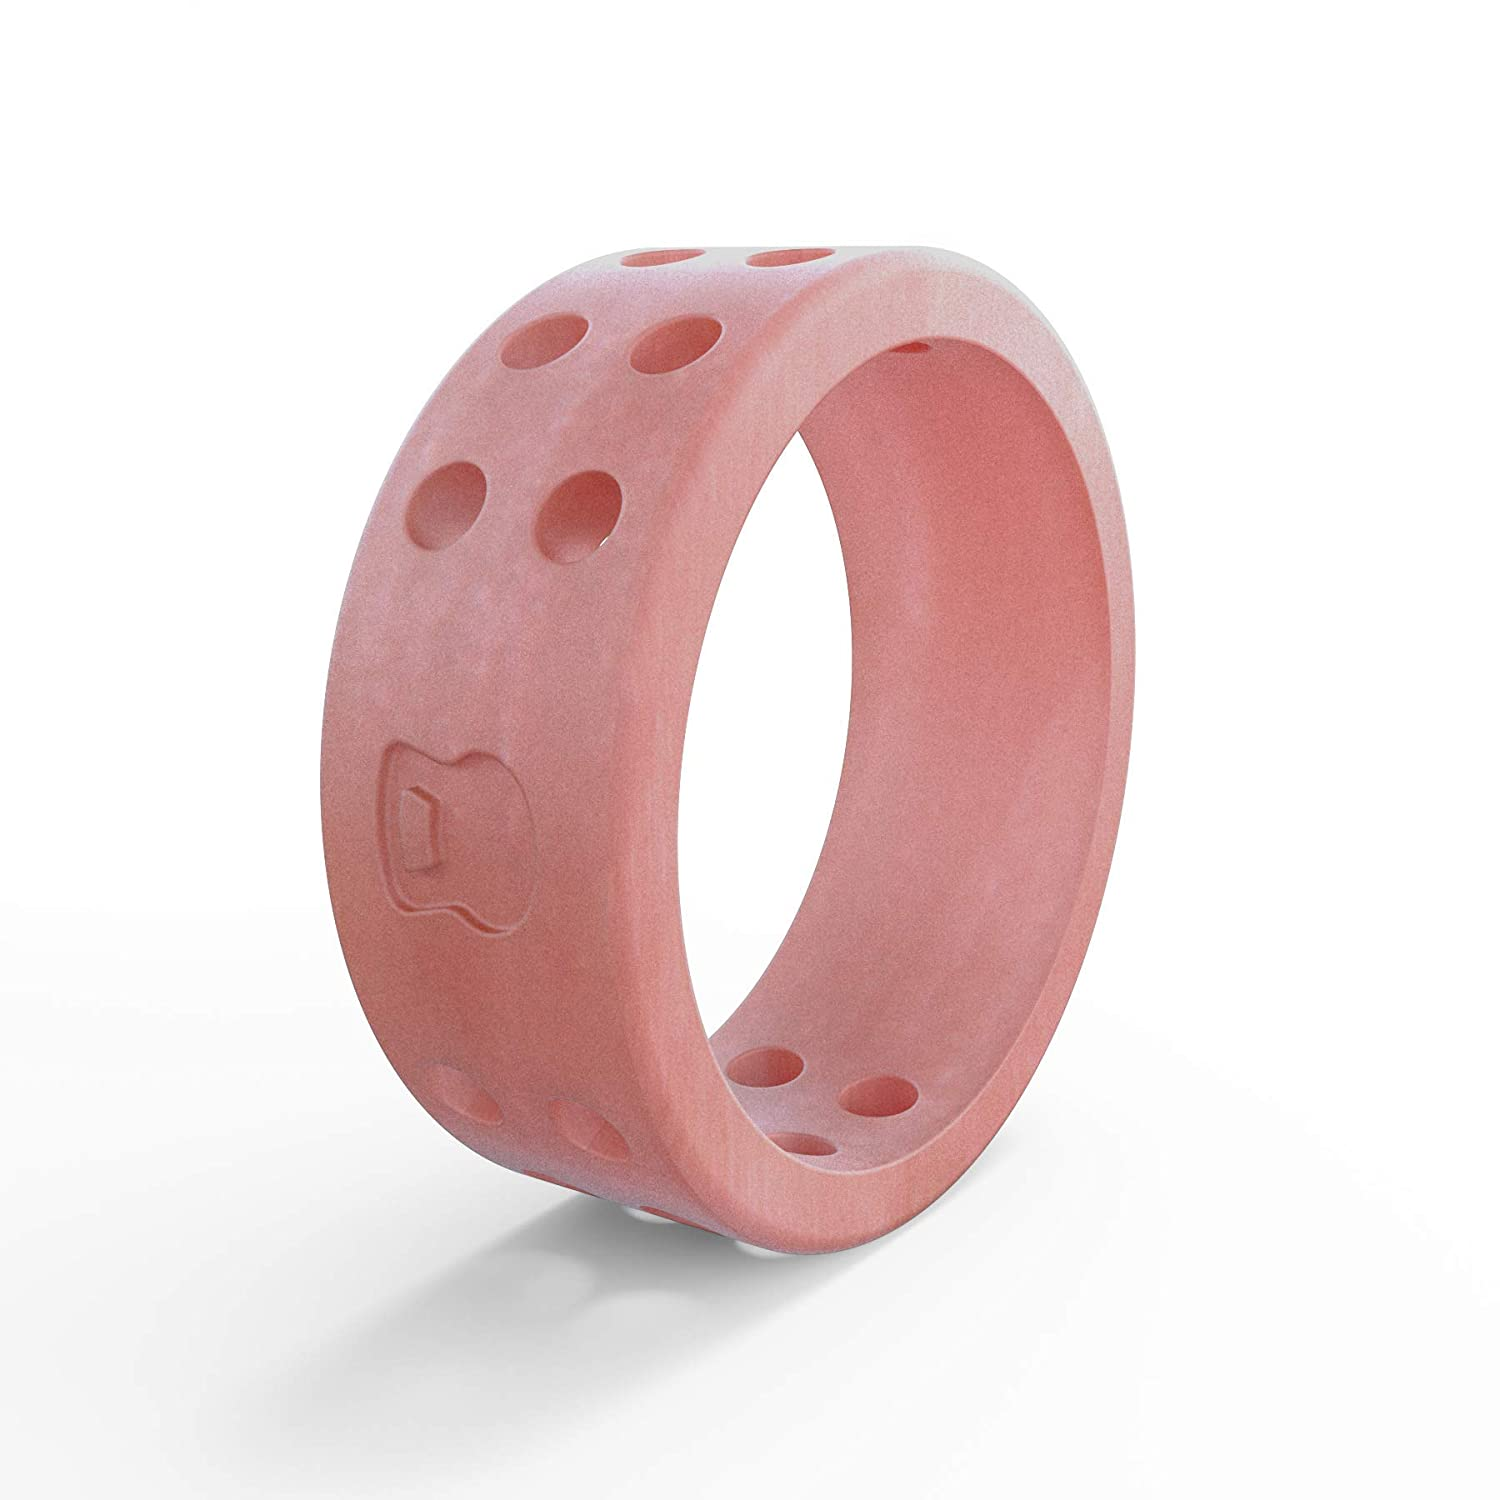 Amazon.com : QALO Women\'s Perforated Silicone Ring, Misty Rose, Size ...